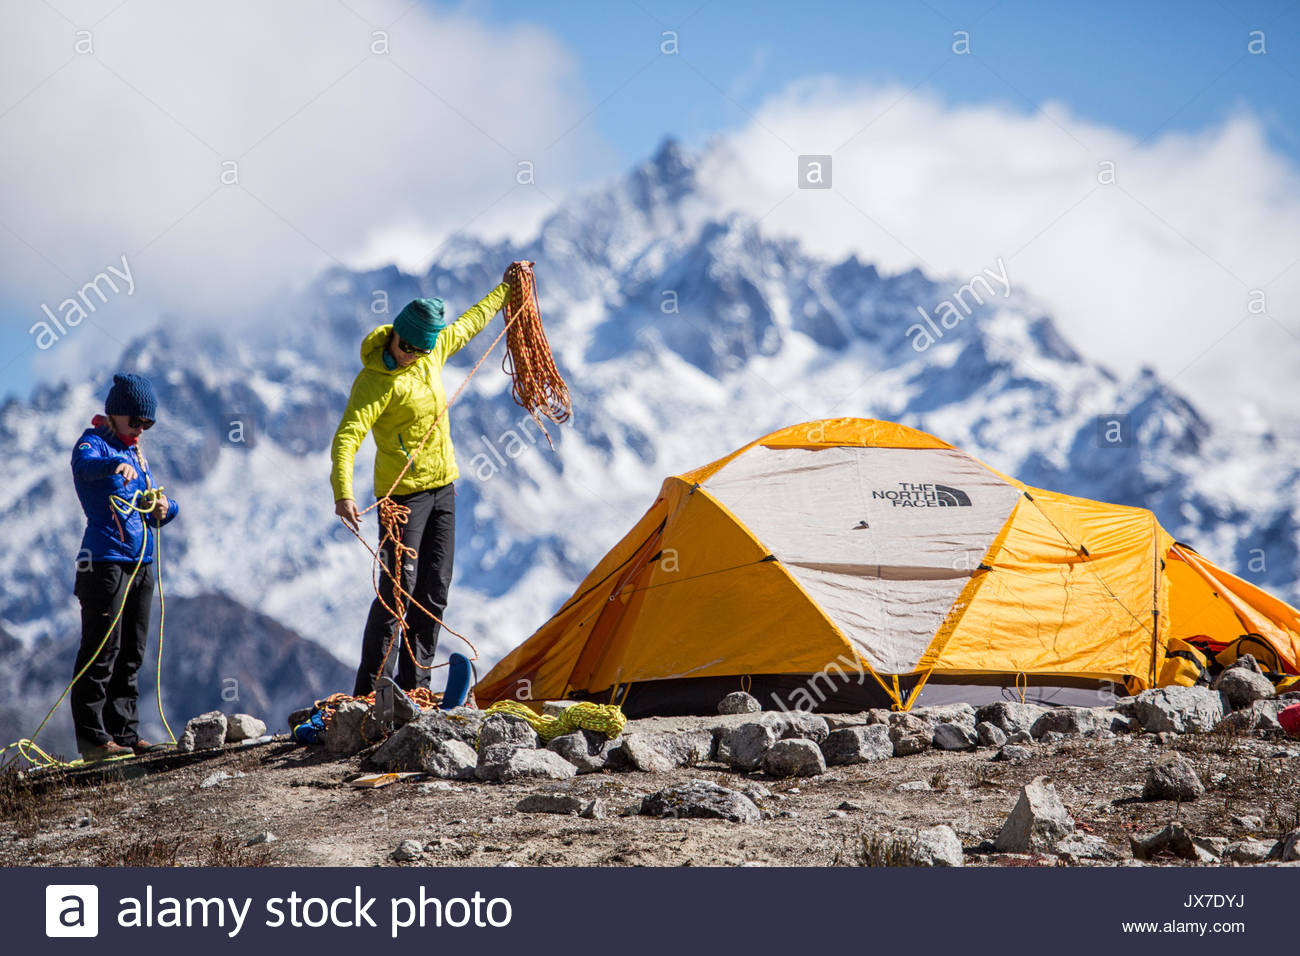 Expedition members check climbing ropes and gear prior to setting out on a mountaineering expedition. Stock Photo